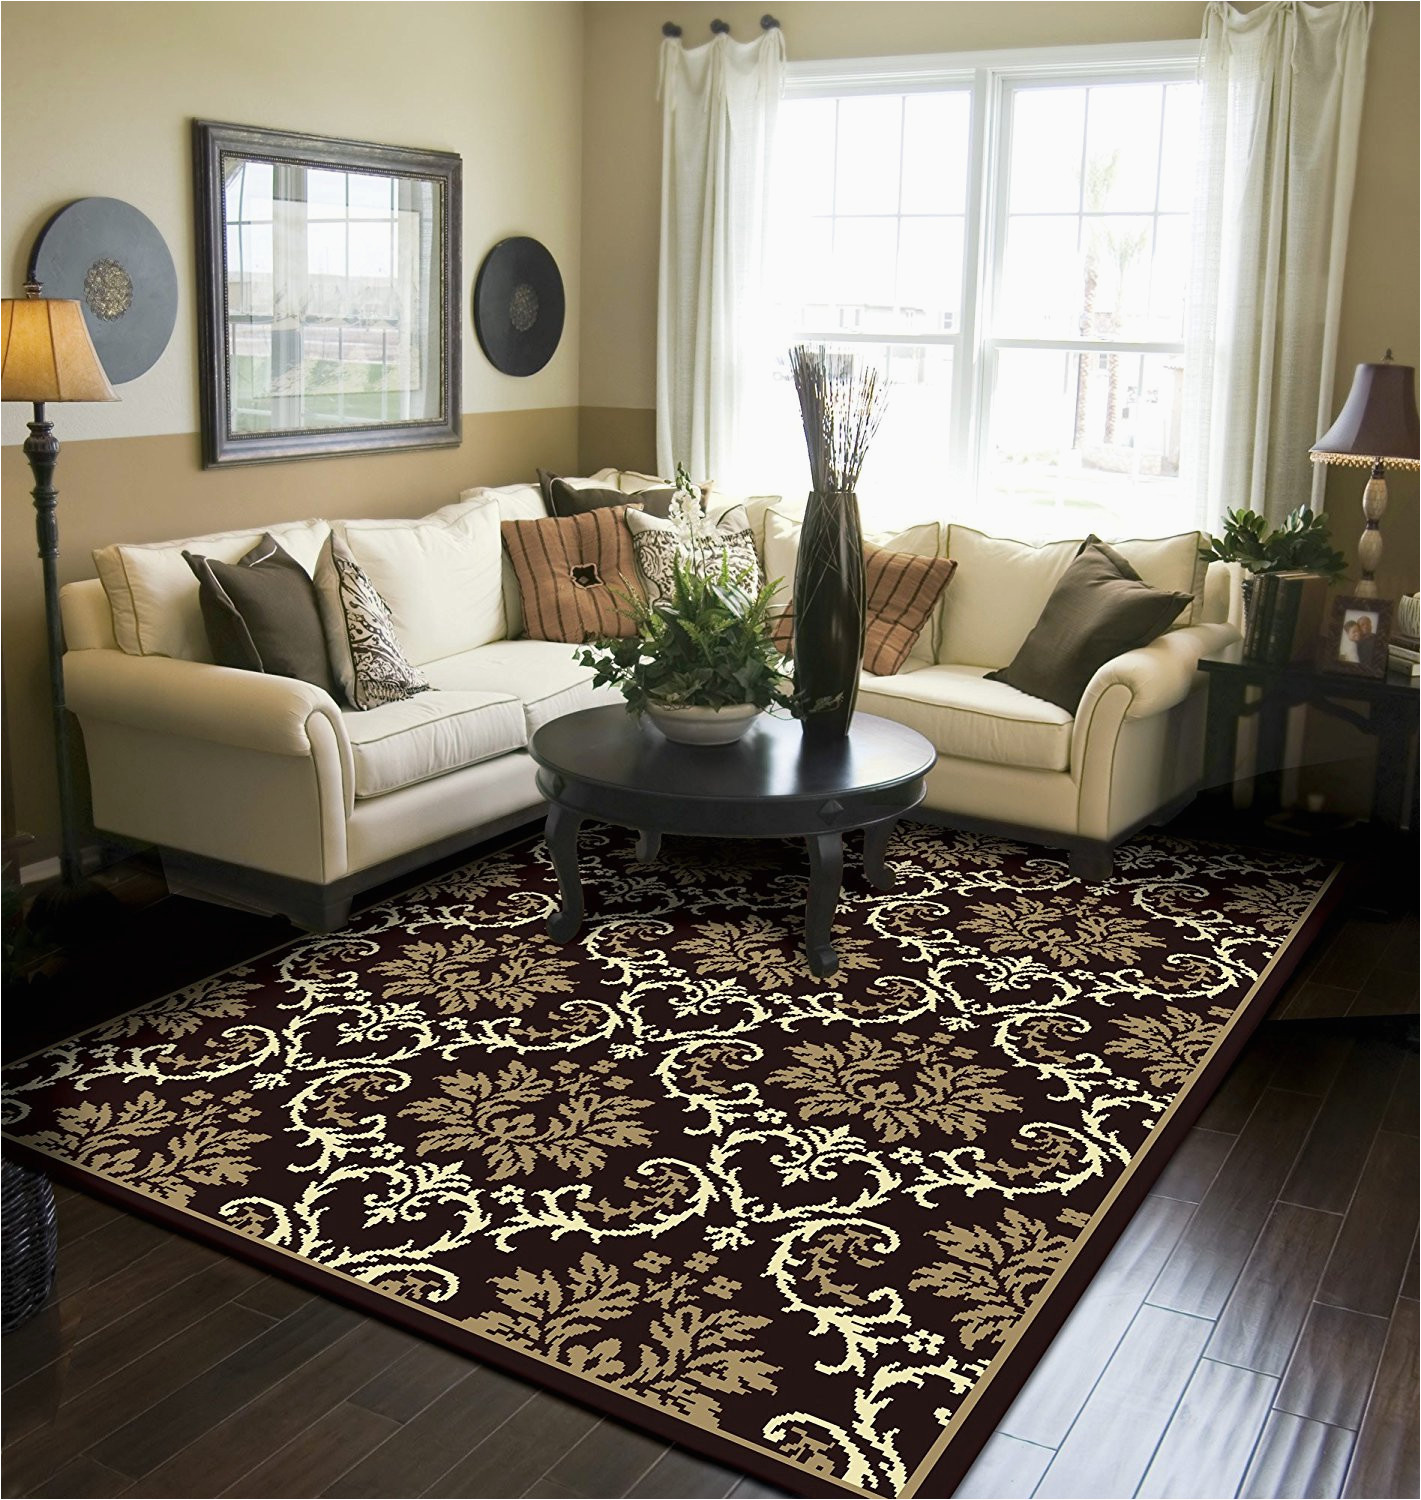 modern area rug black large rugs for living room 8x10 clearance under 100 b078mlllww yhg 1998